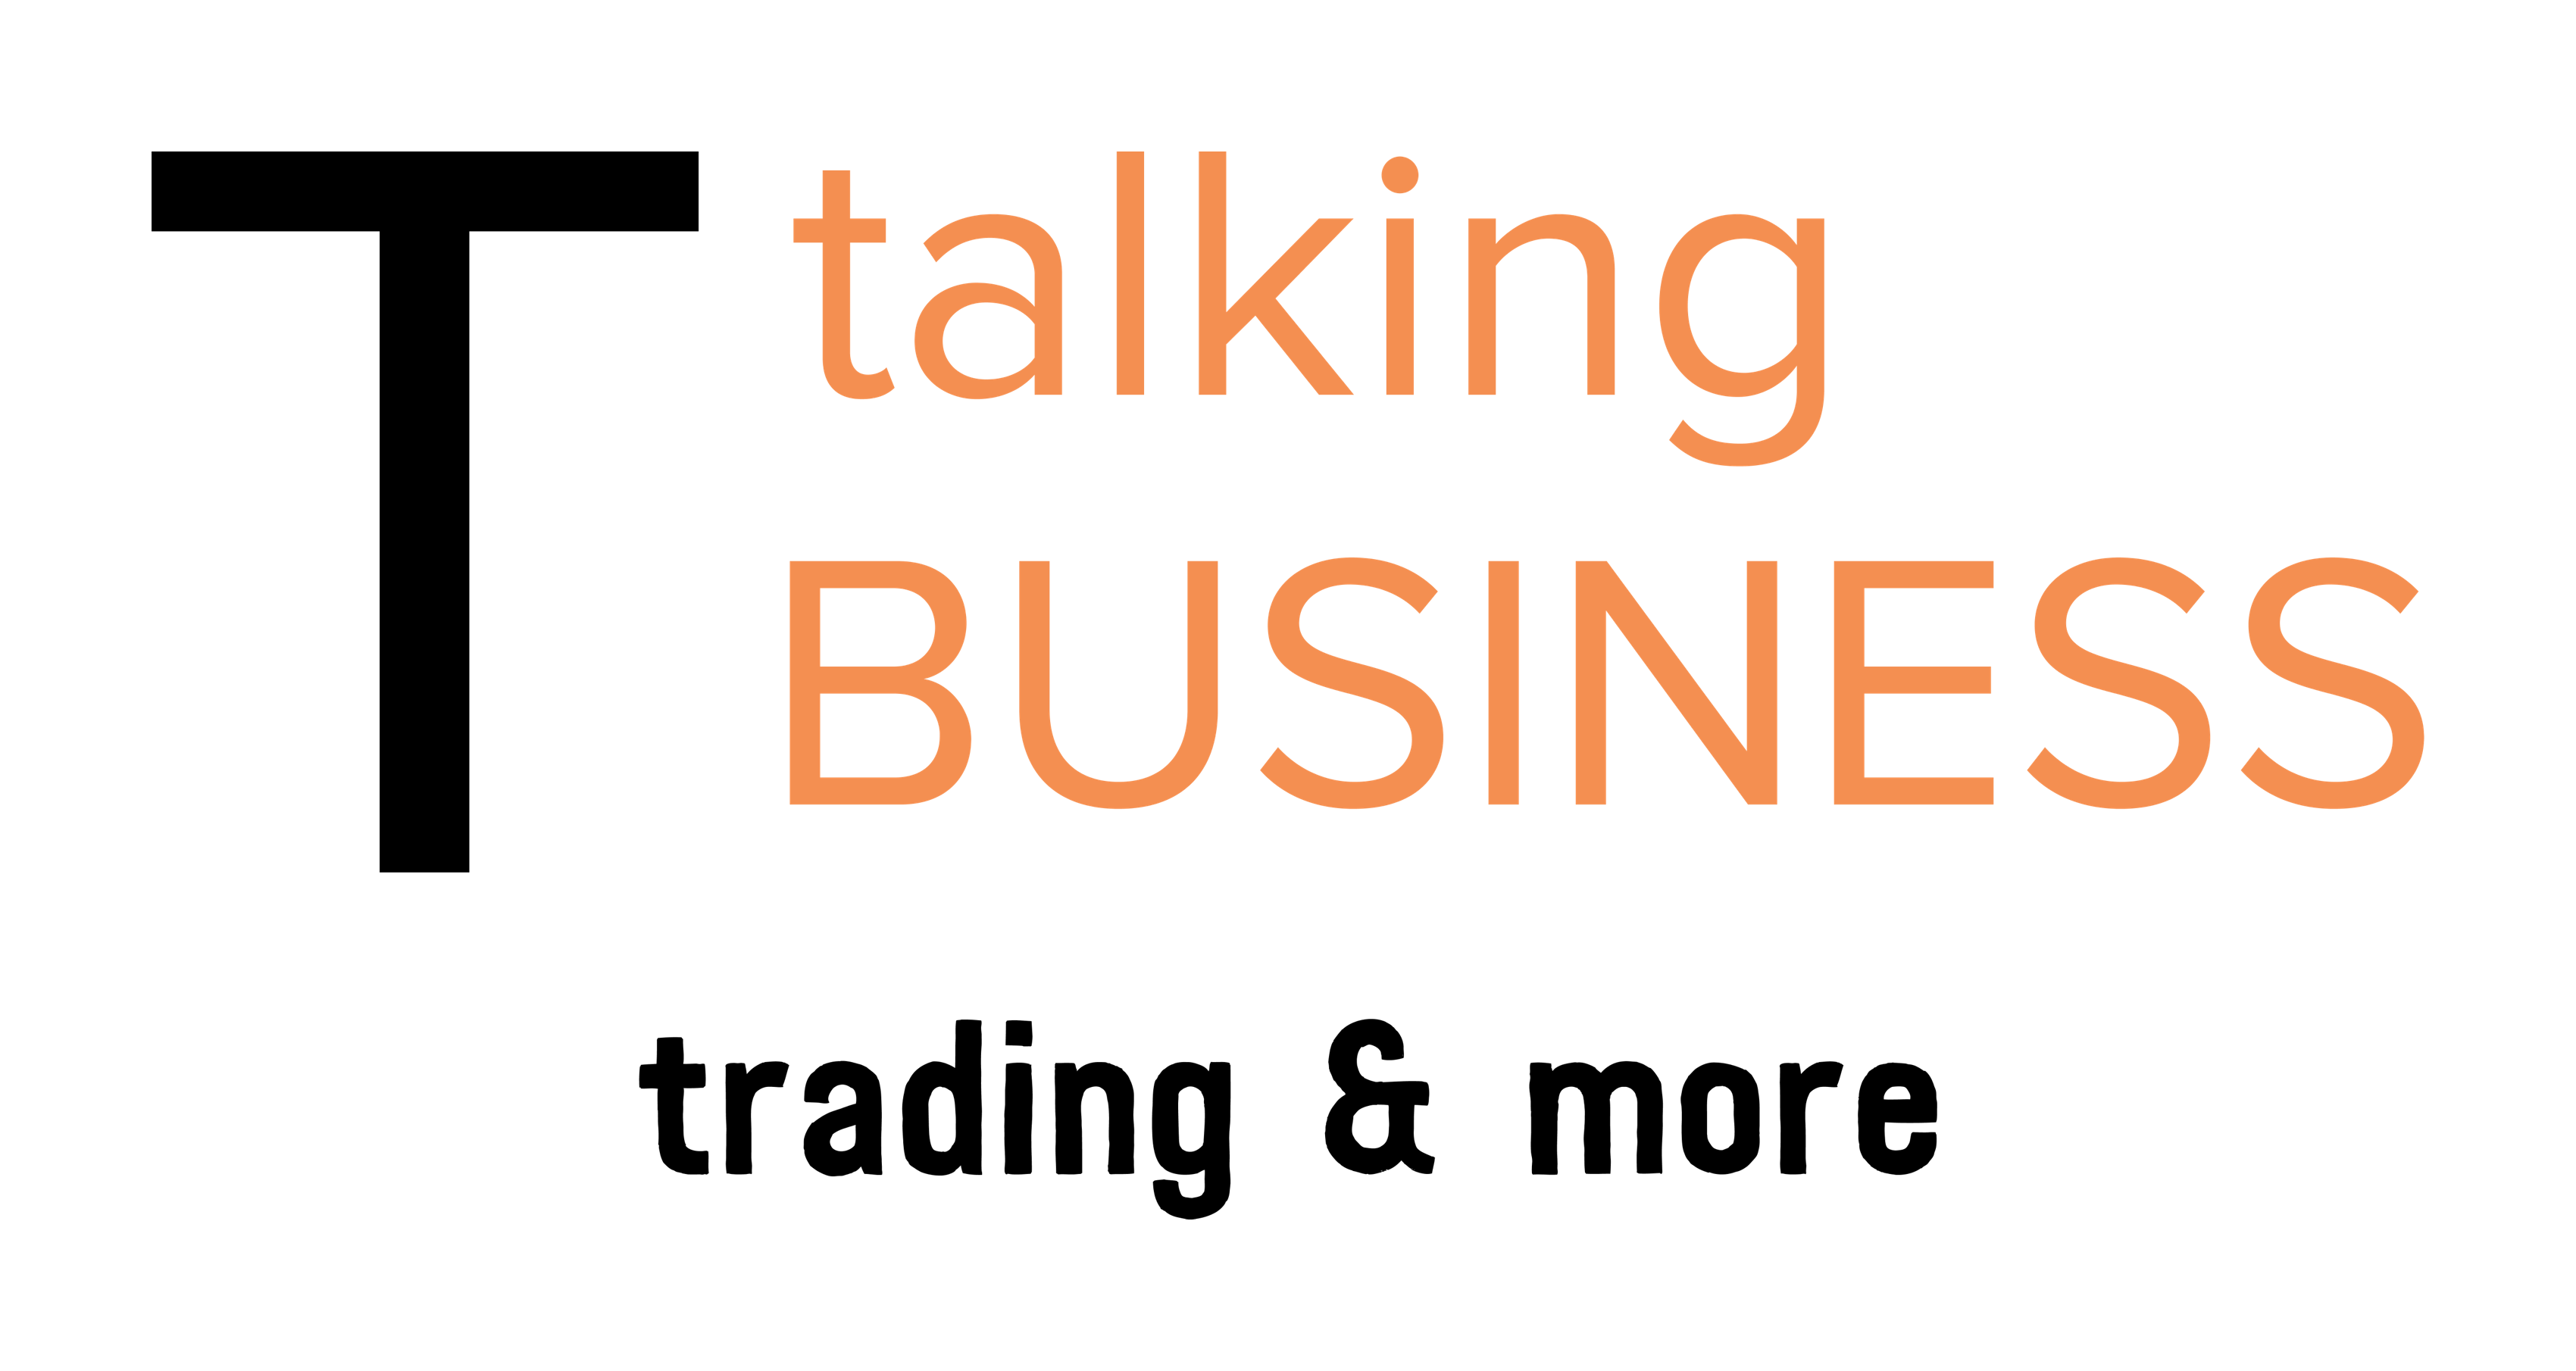 talkingBUSINESS trading & more